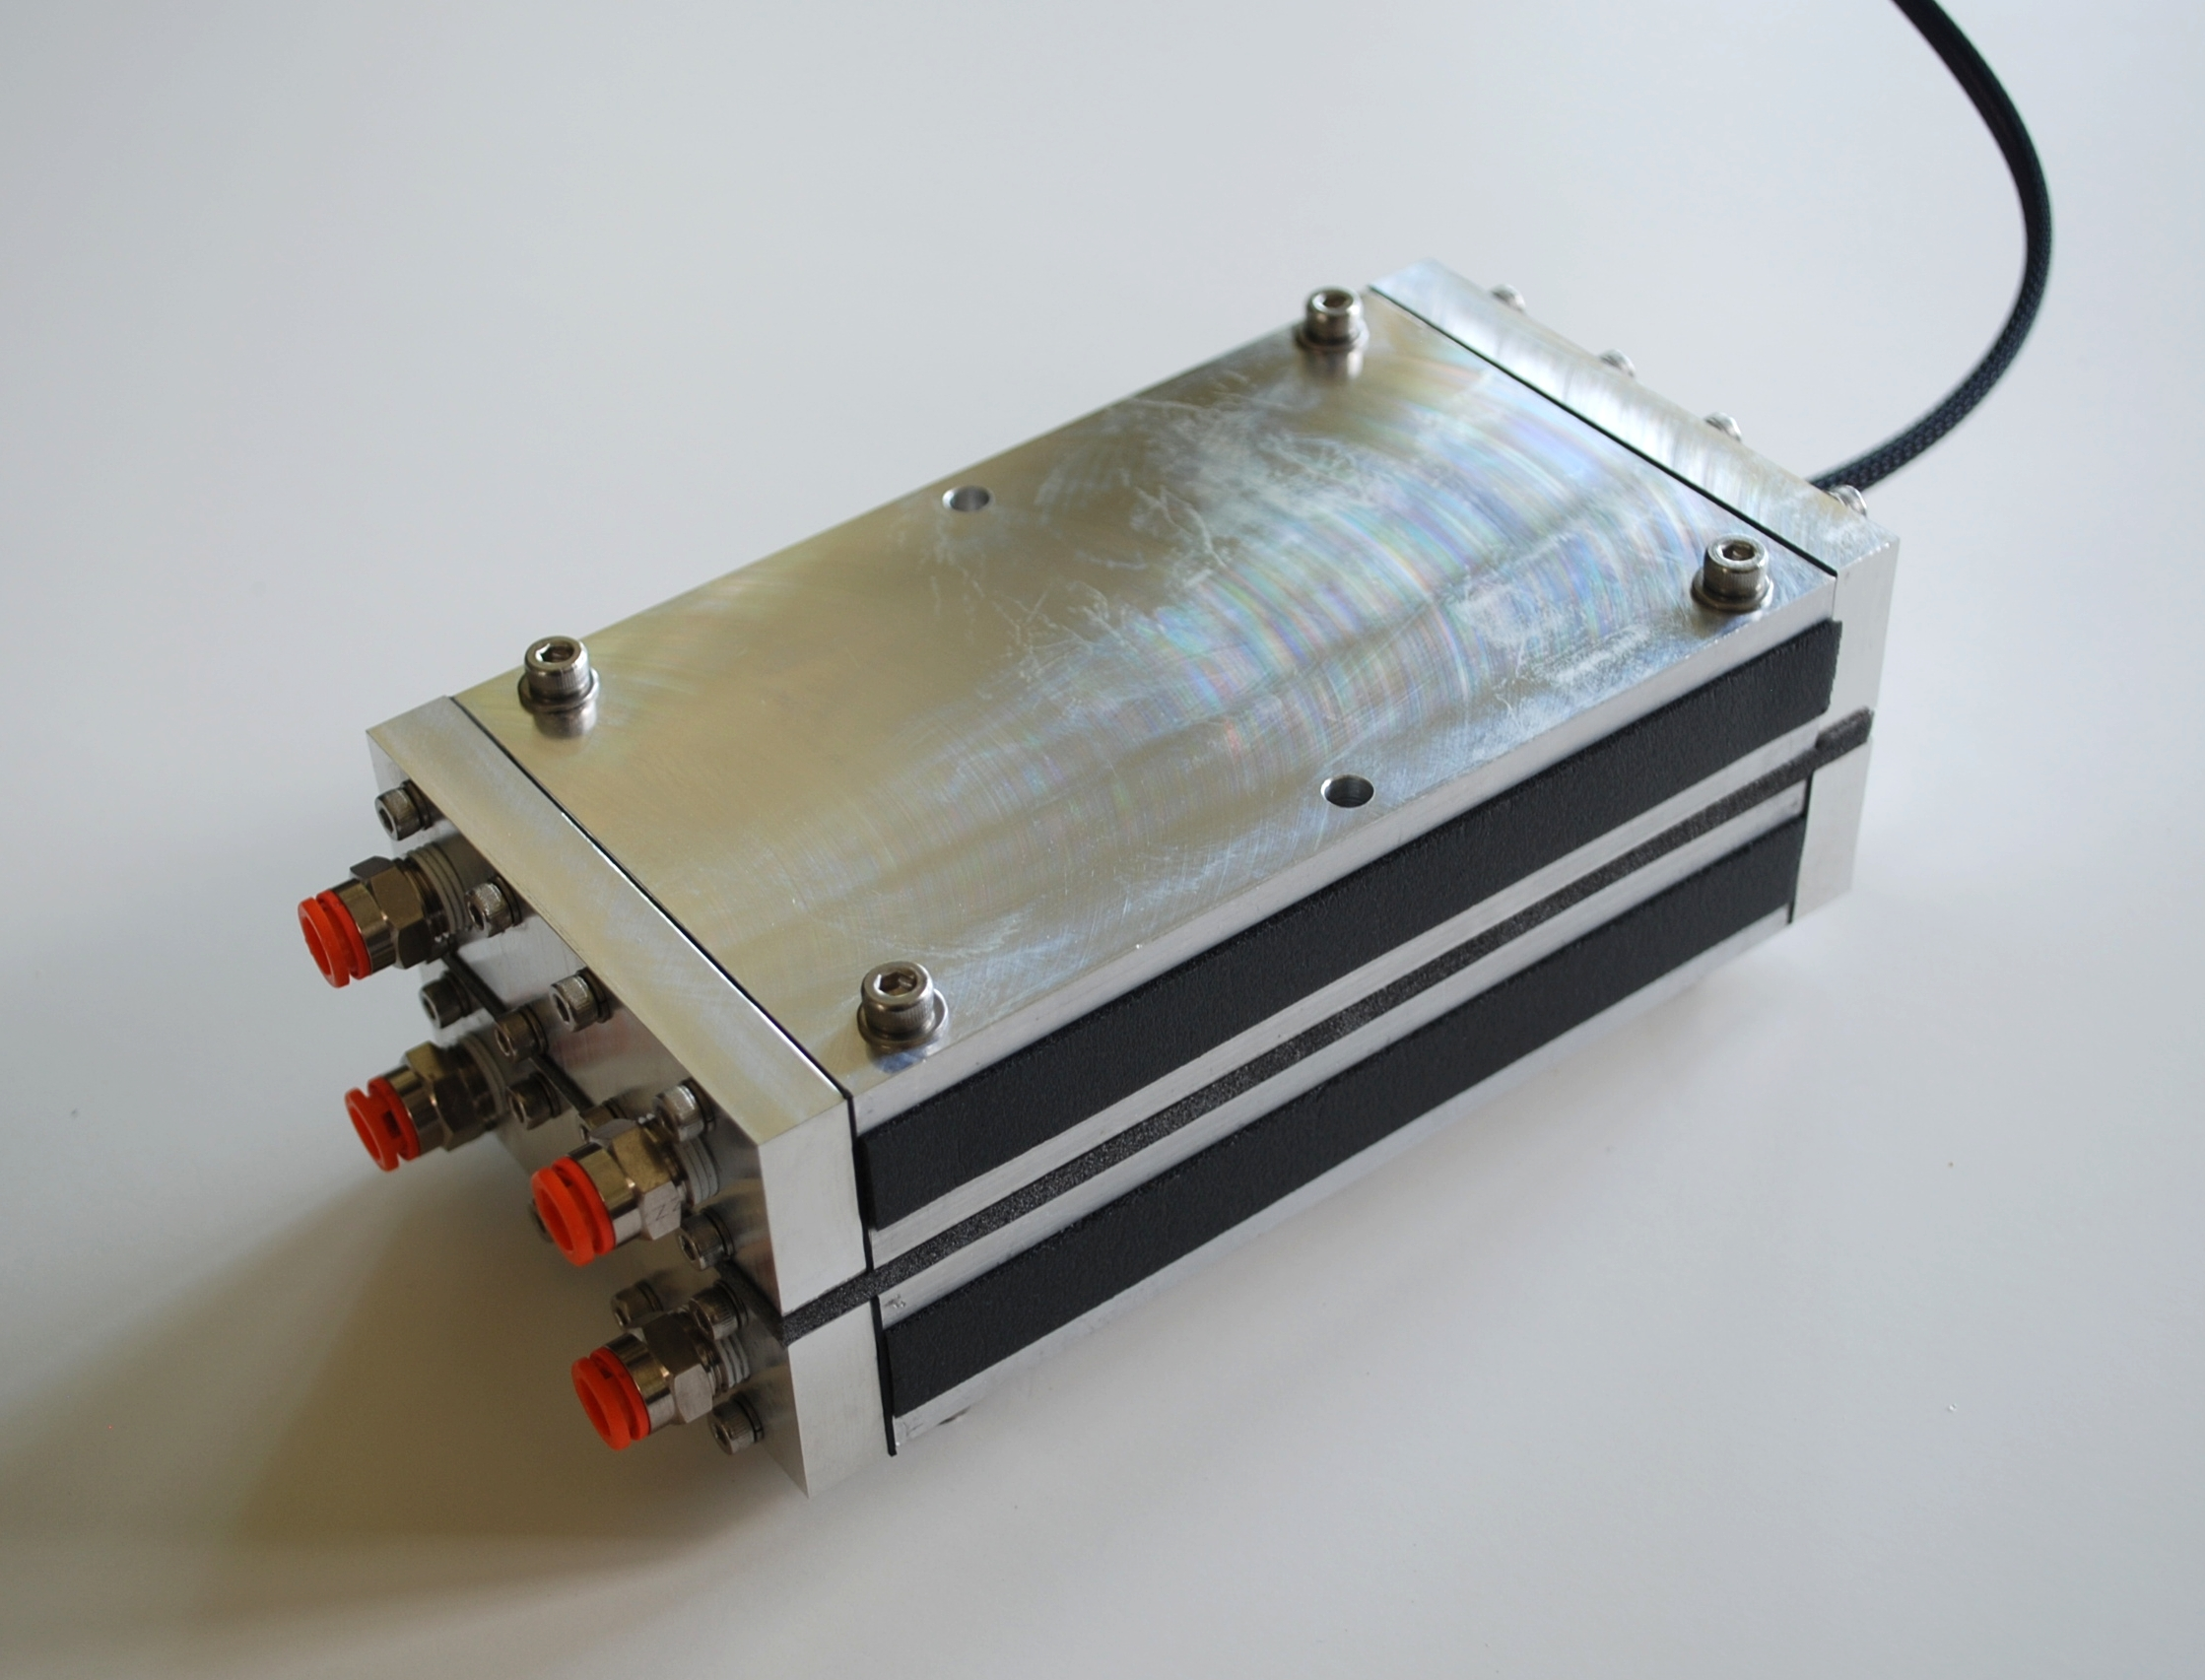 Thermoelectric Chiller Images - Reverse Search